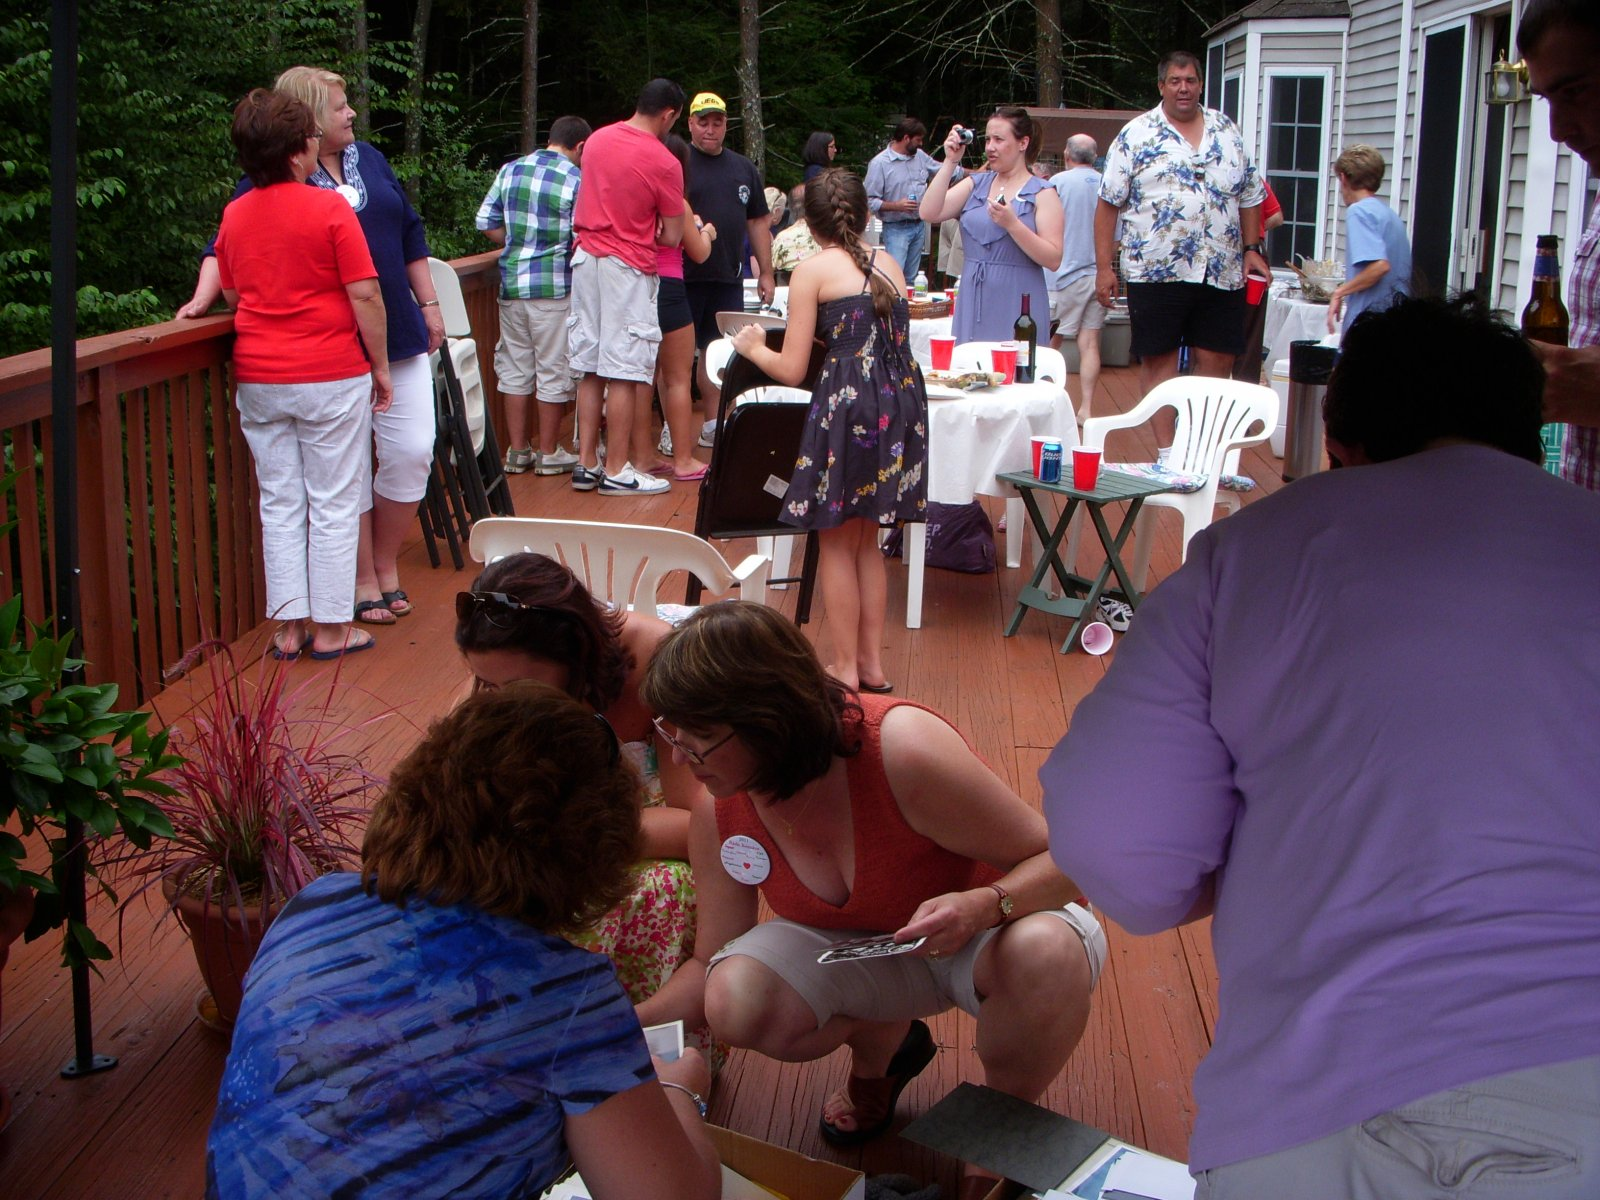 Click image for larger version  Name:Reunion Aug 2011 060.jpg Views:102 Size:356.9 KB ID:137588